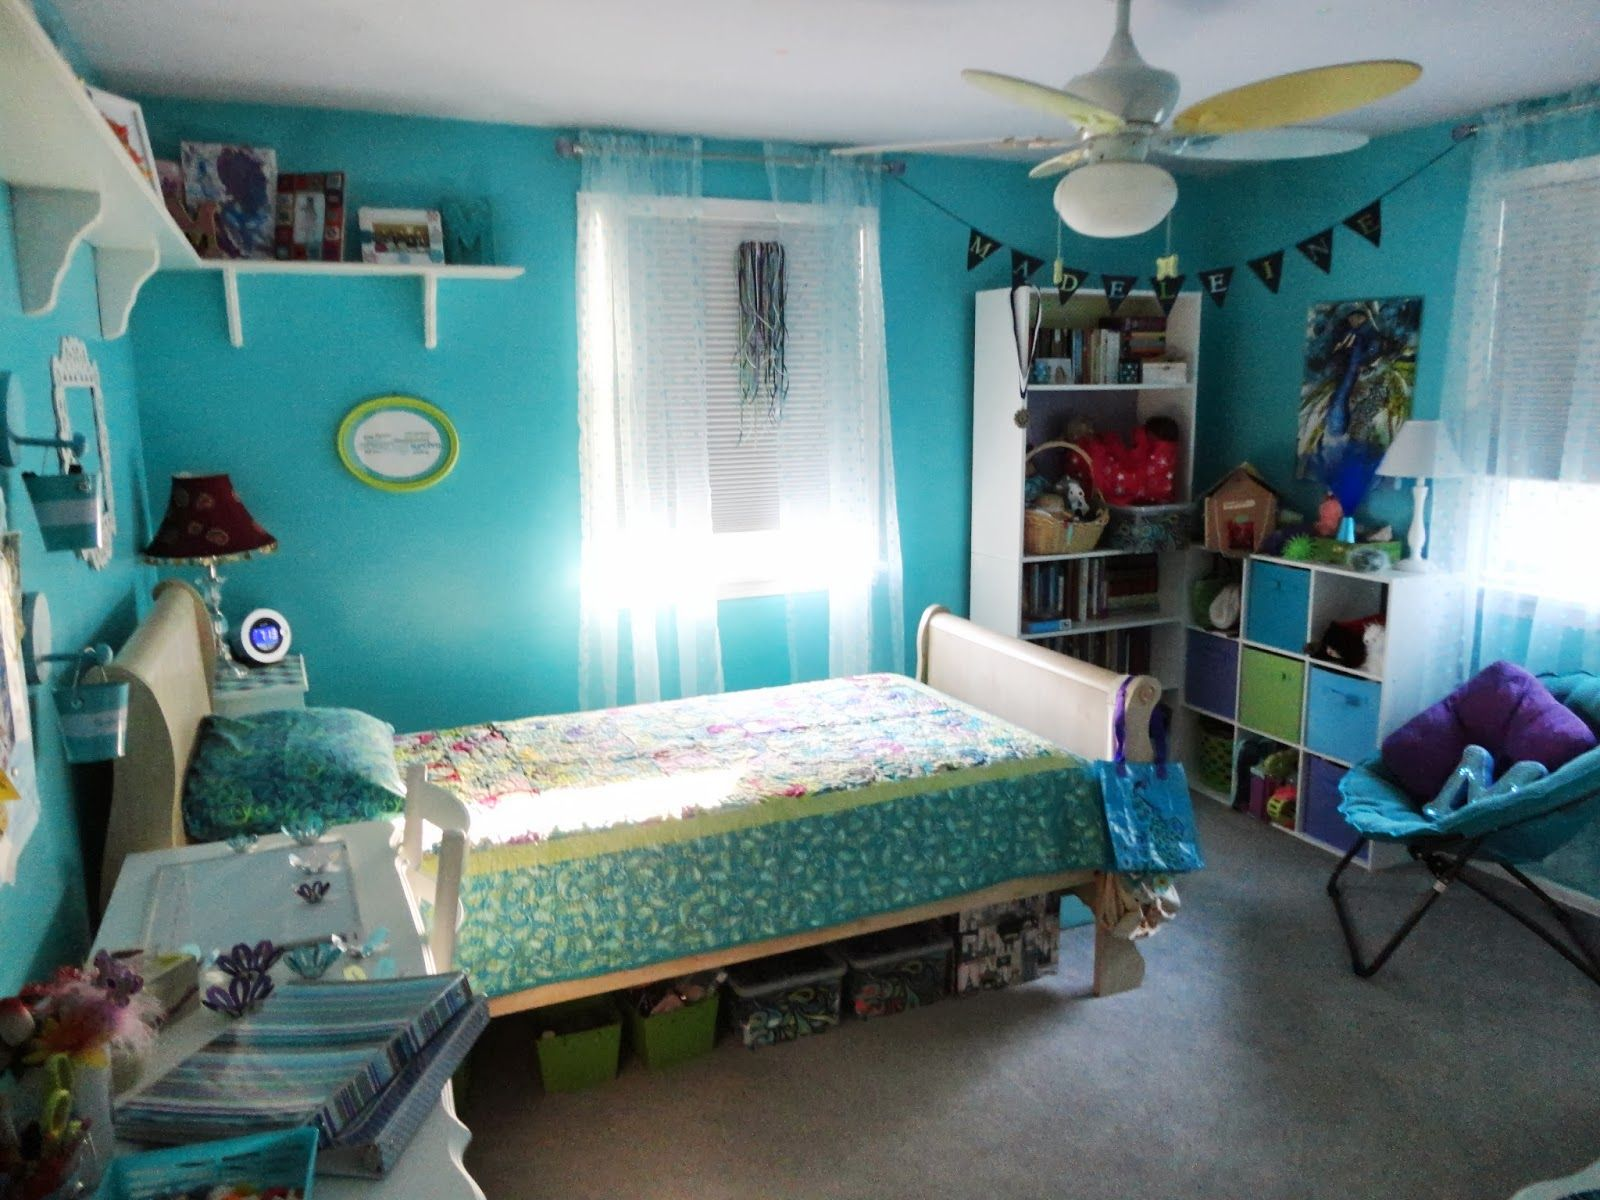 Girls Bedroom Ideas Blue And Green. bedroom wonderful teenage girl ideas blue pictures teamne extraordinary  cute room decor decorated with double mini